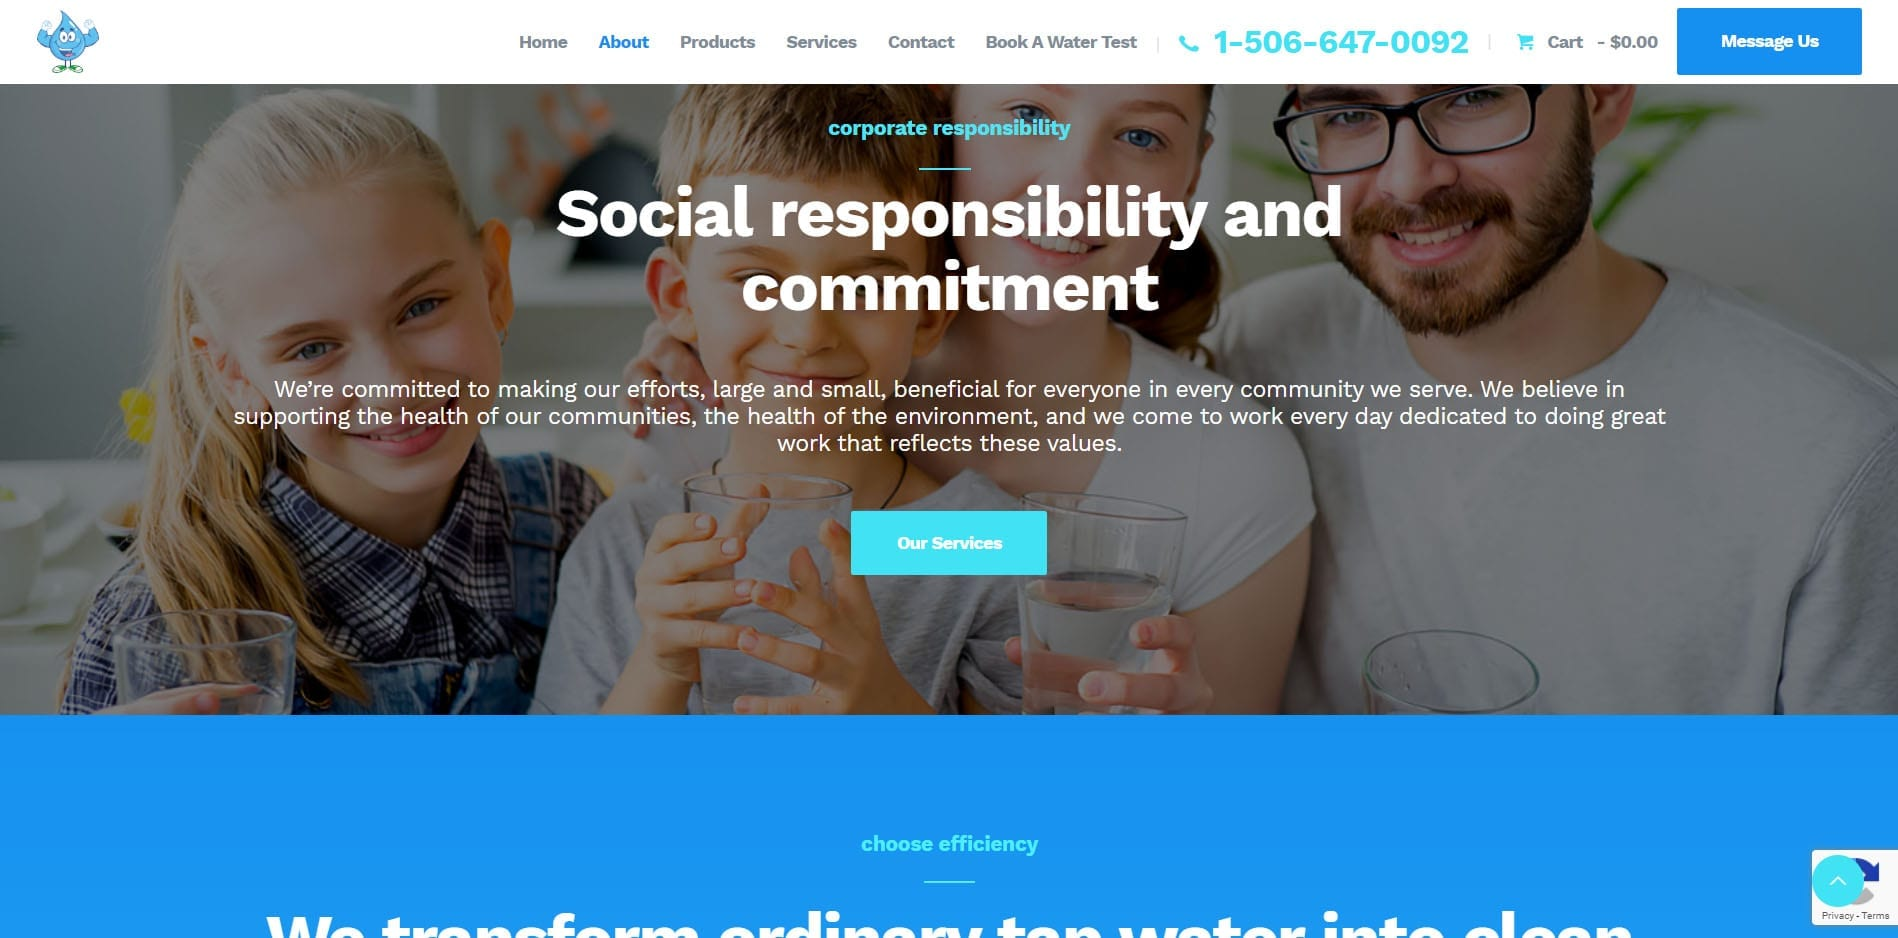 Water Man NB Social Responsibility - Built and Managed by Eagle Digital Media